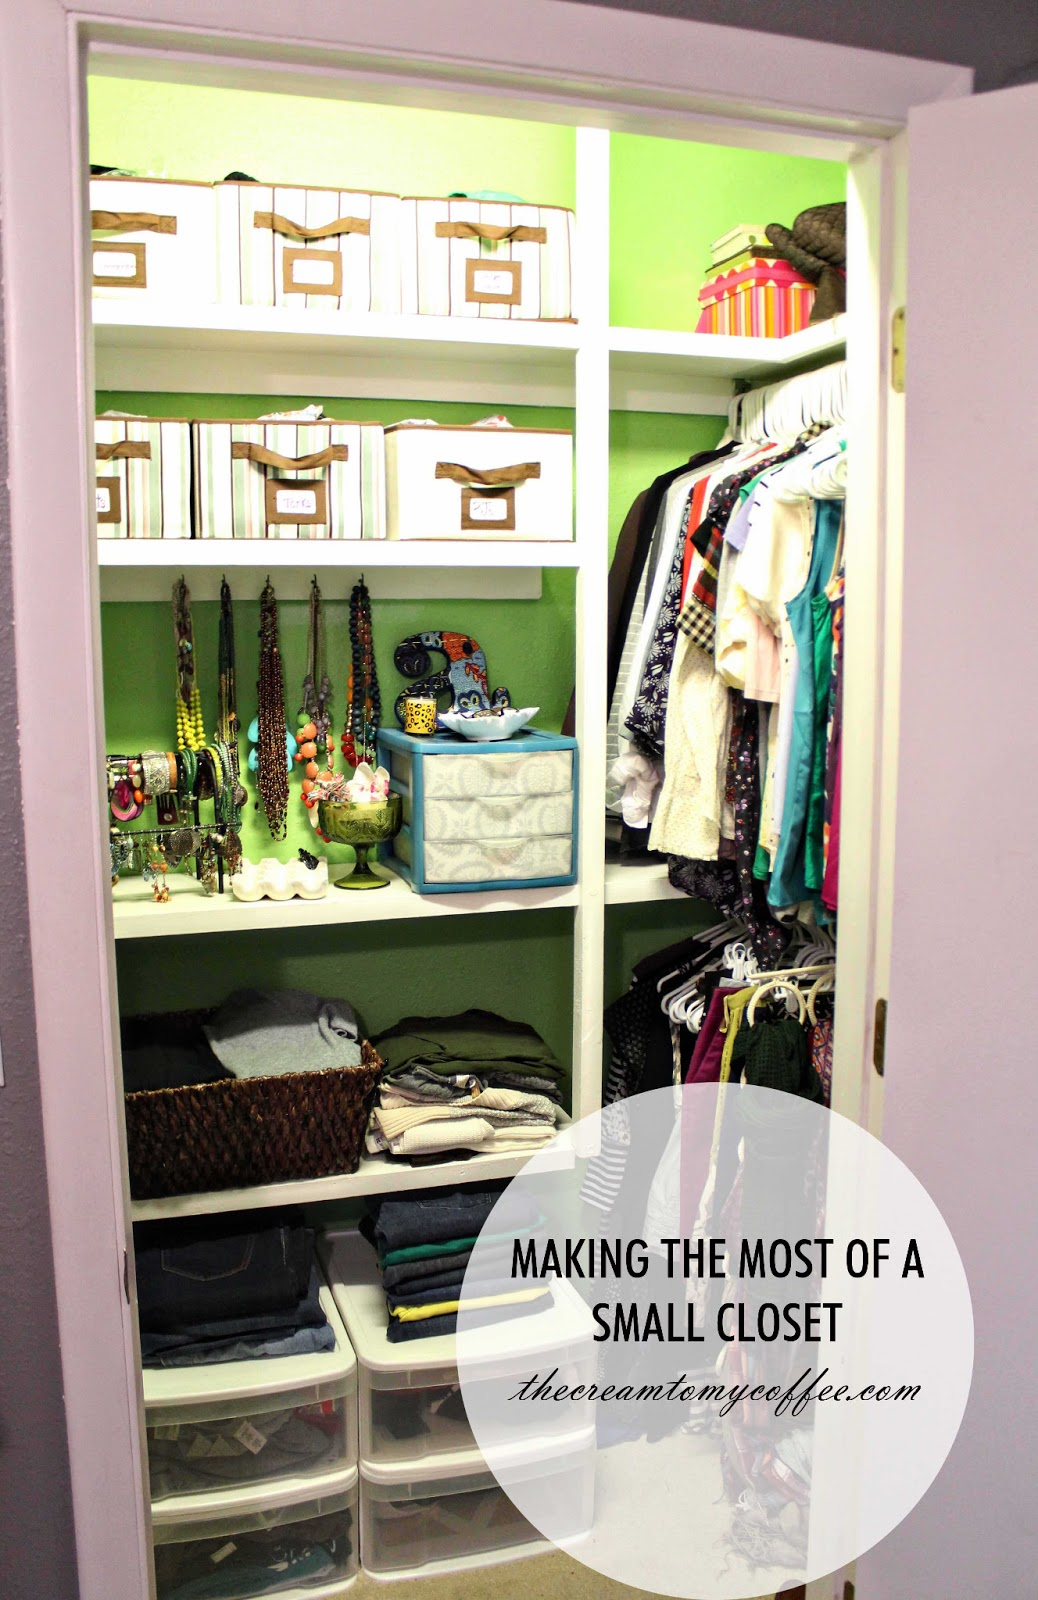 Instead of cutting your clothing collection in half, use these small closet organization tips and ideas from the experts to create twice as much space as you had before.